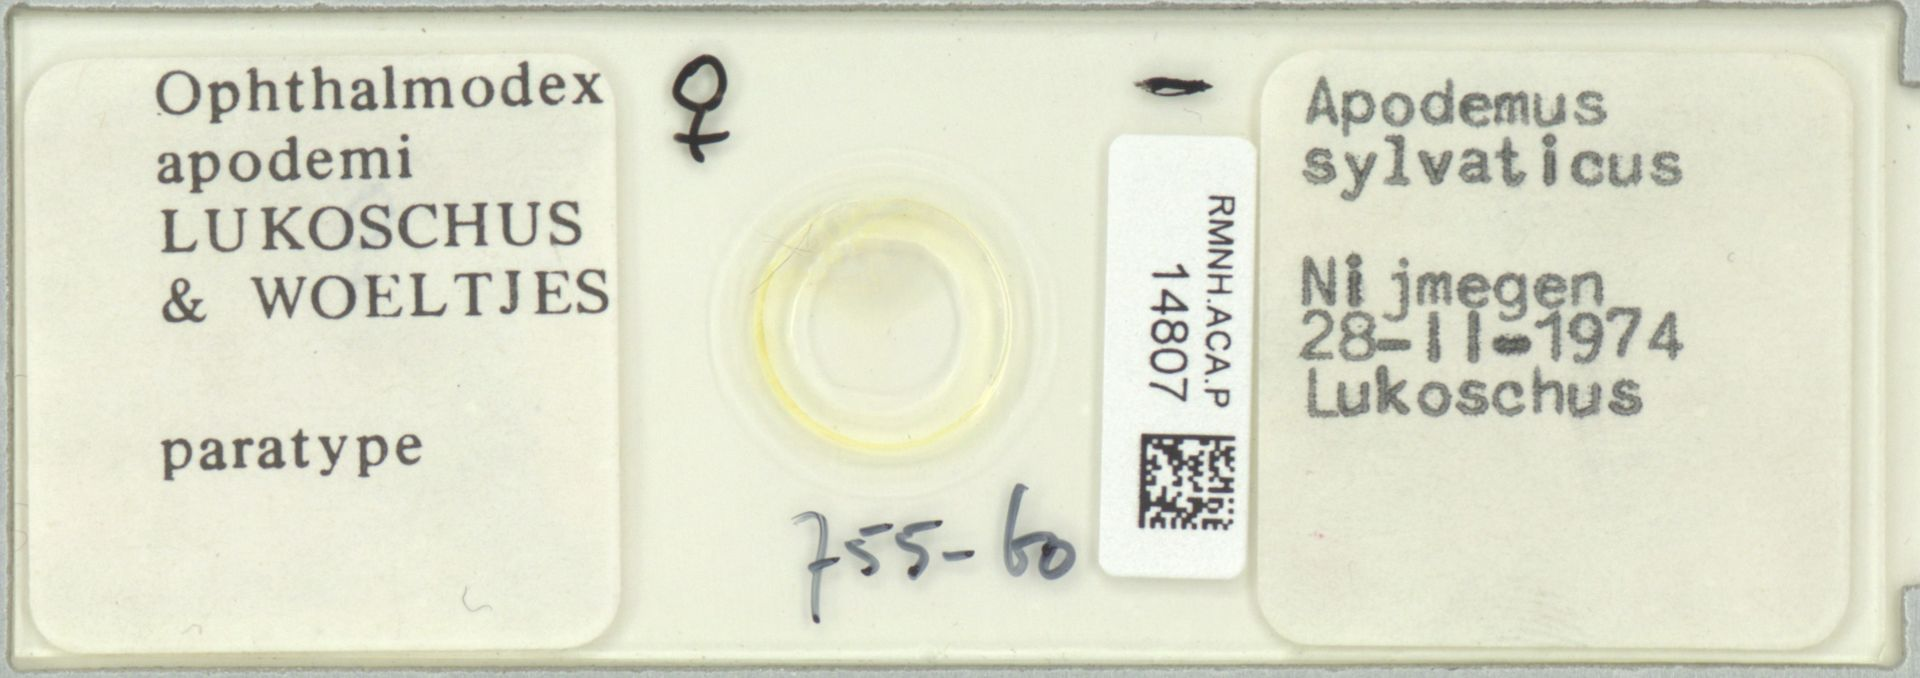 RMNH.ACA.P.14807 | Ophthalmodex apodemi